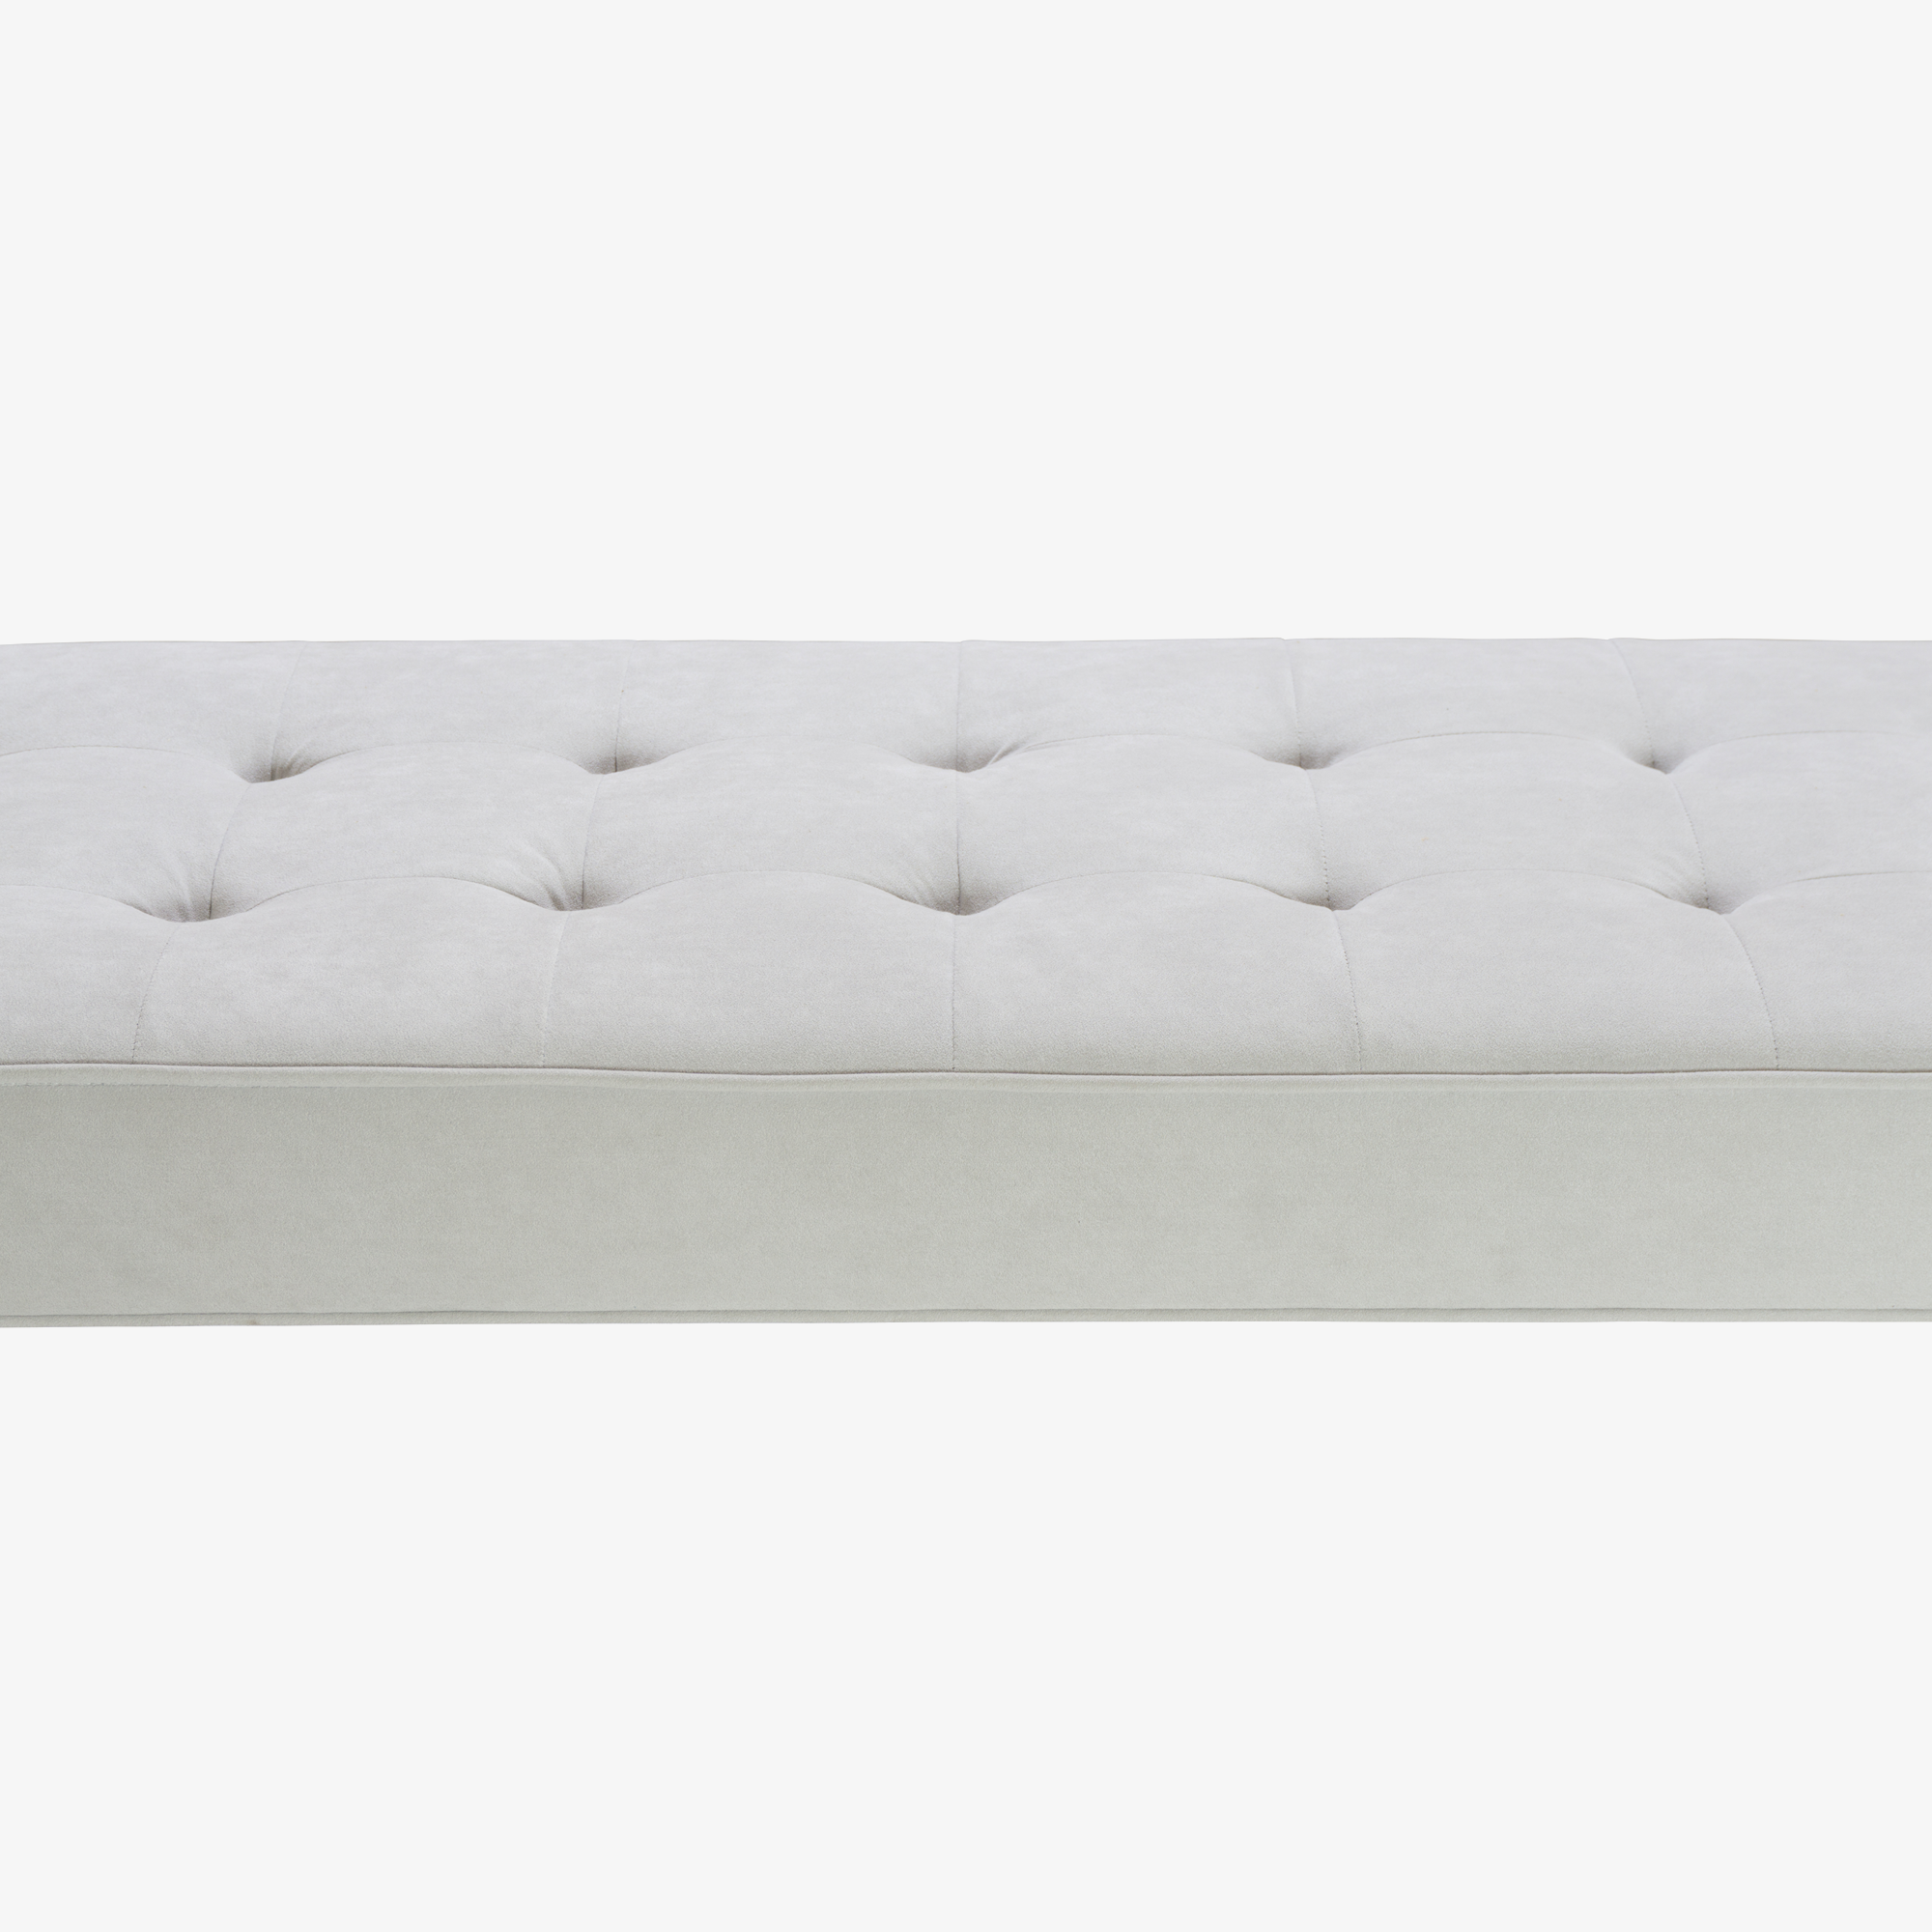 Astor 60%22 Tufted Brass Bench in Dove Luxe Suede (1 of 8)6.png